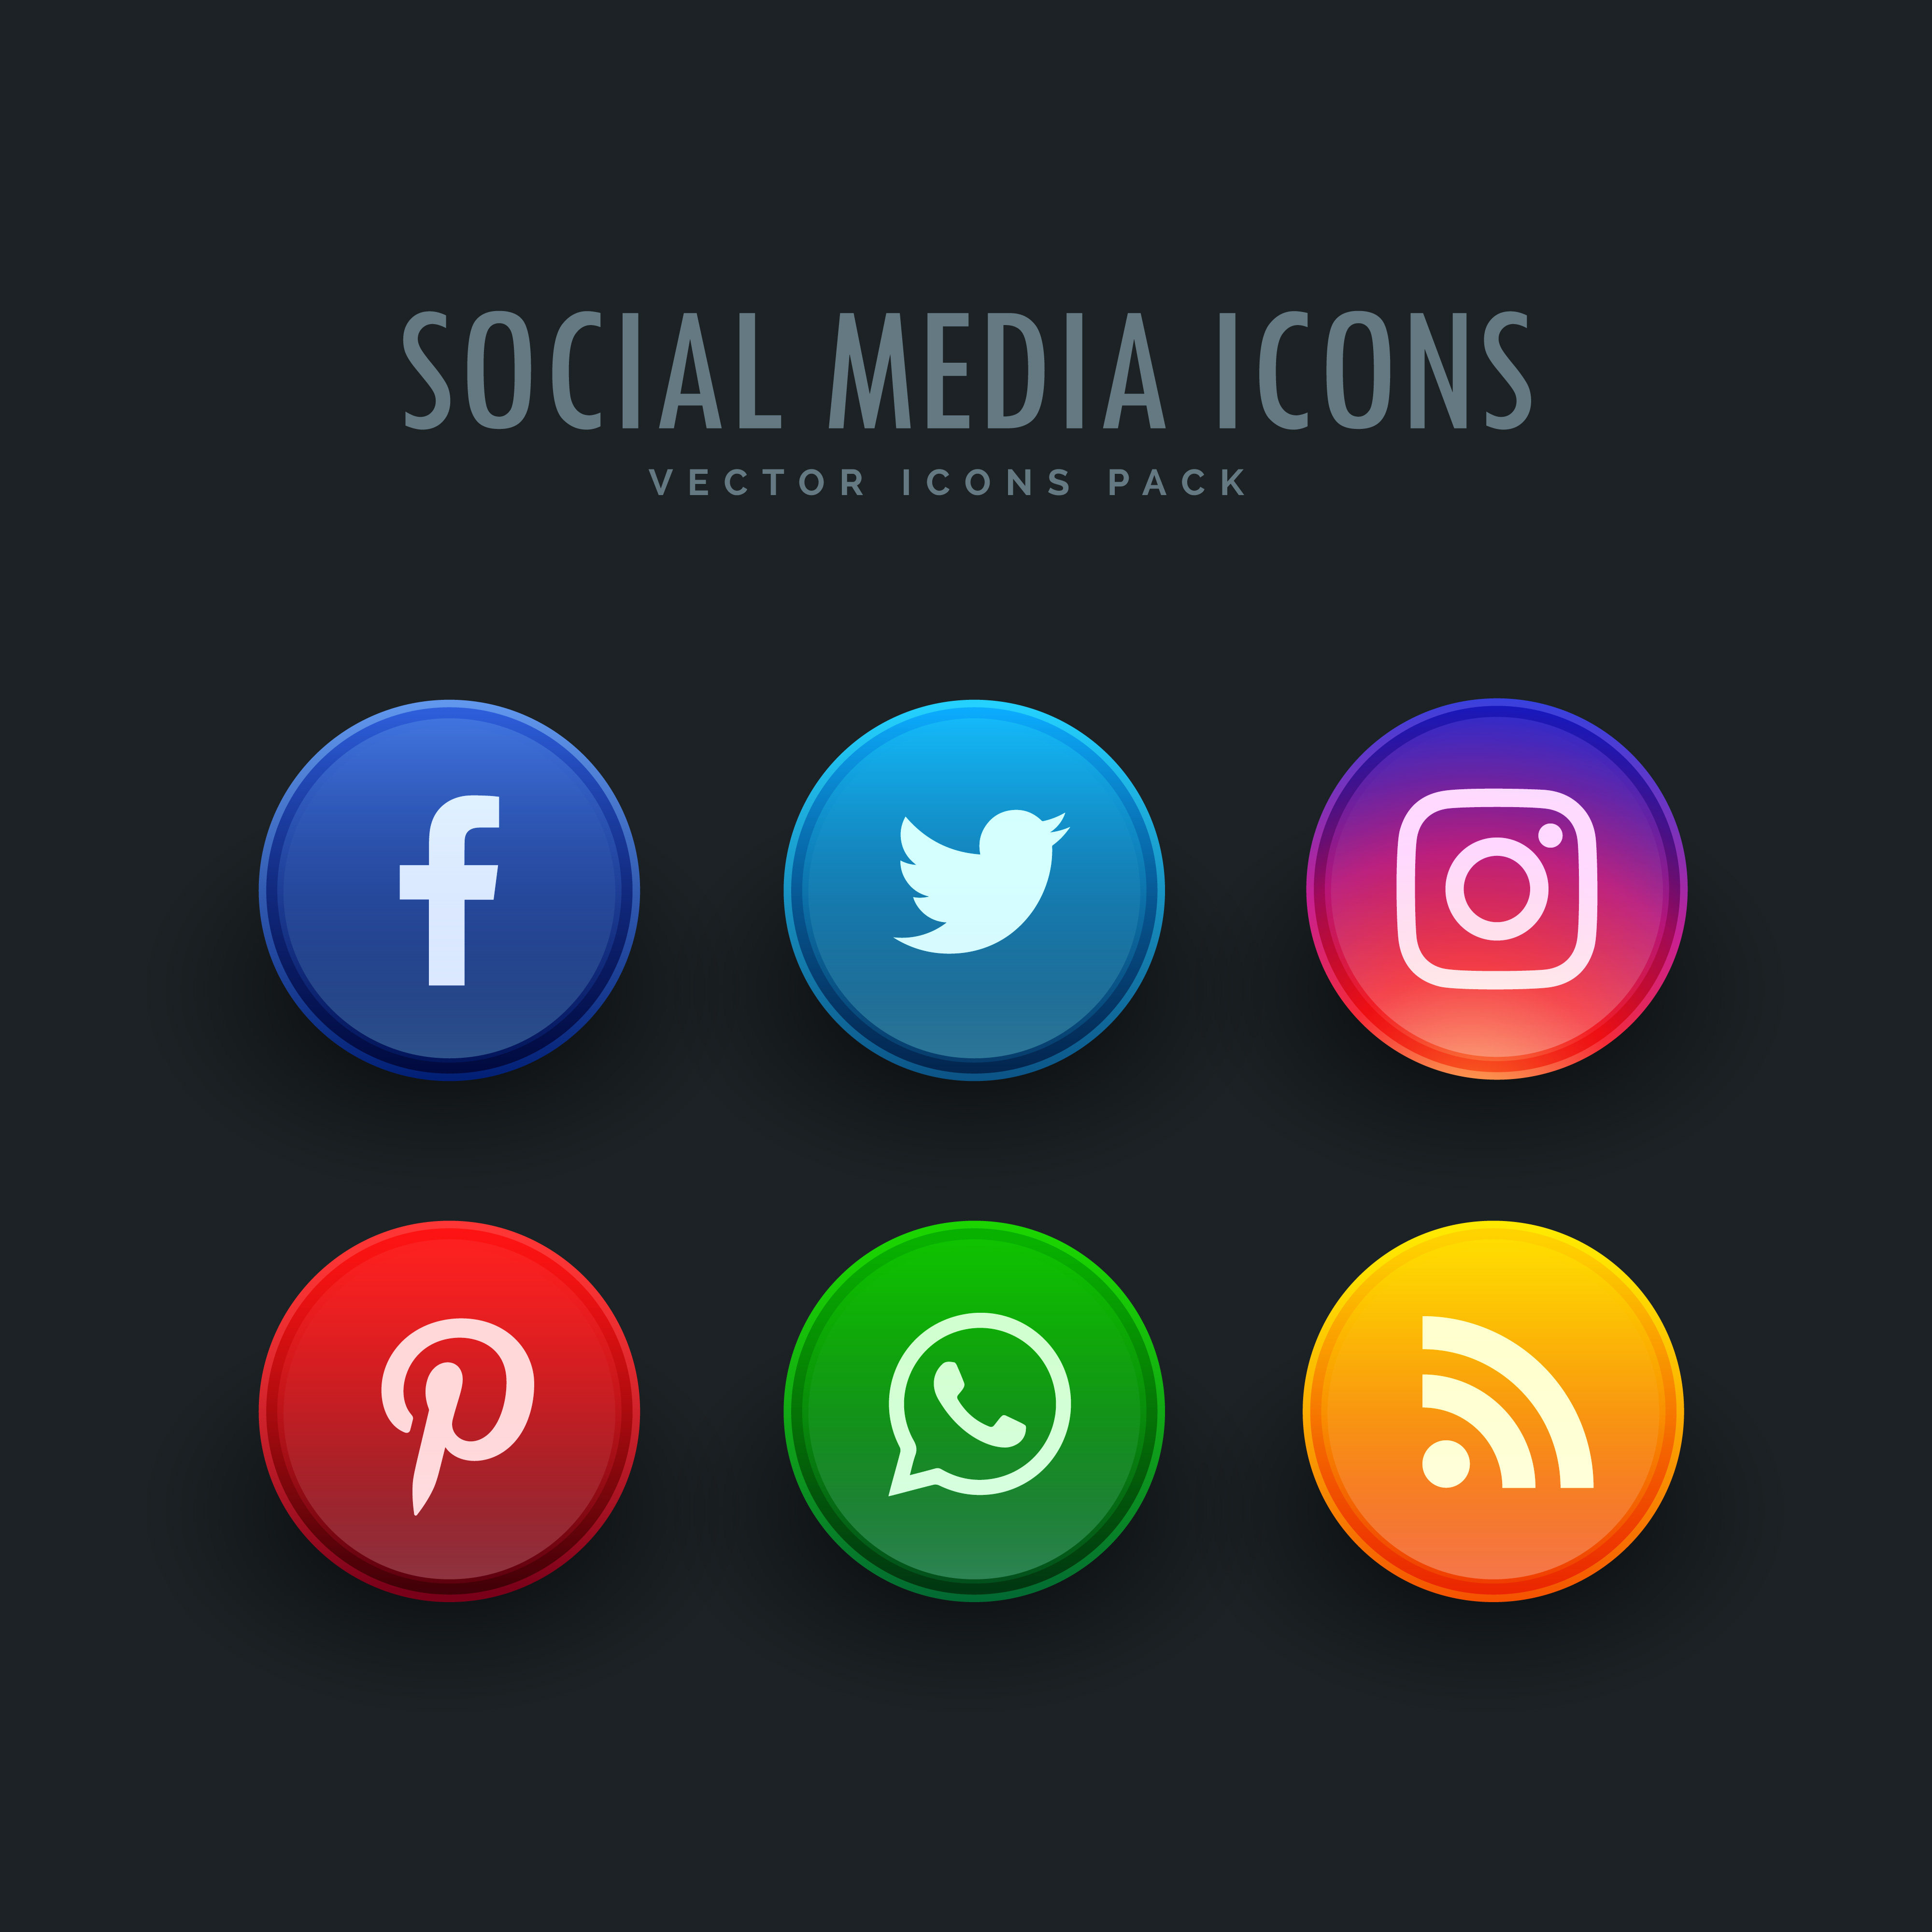 social media icons pack in button style